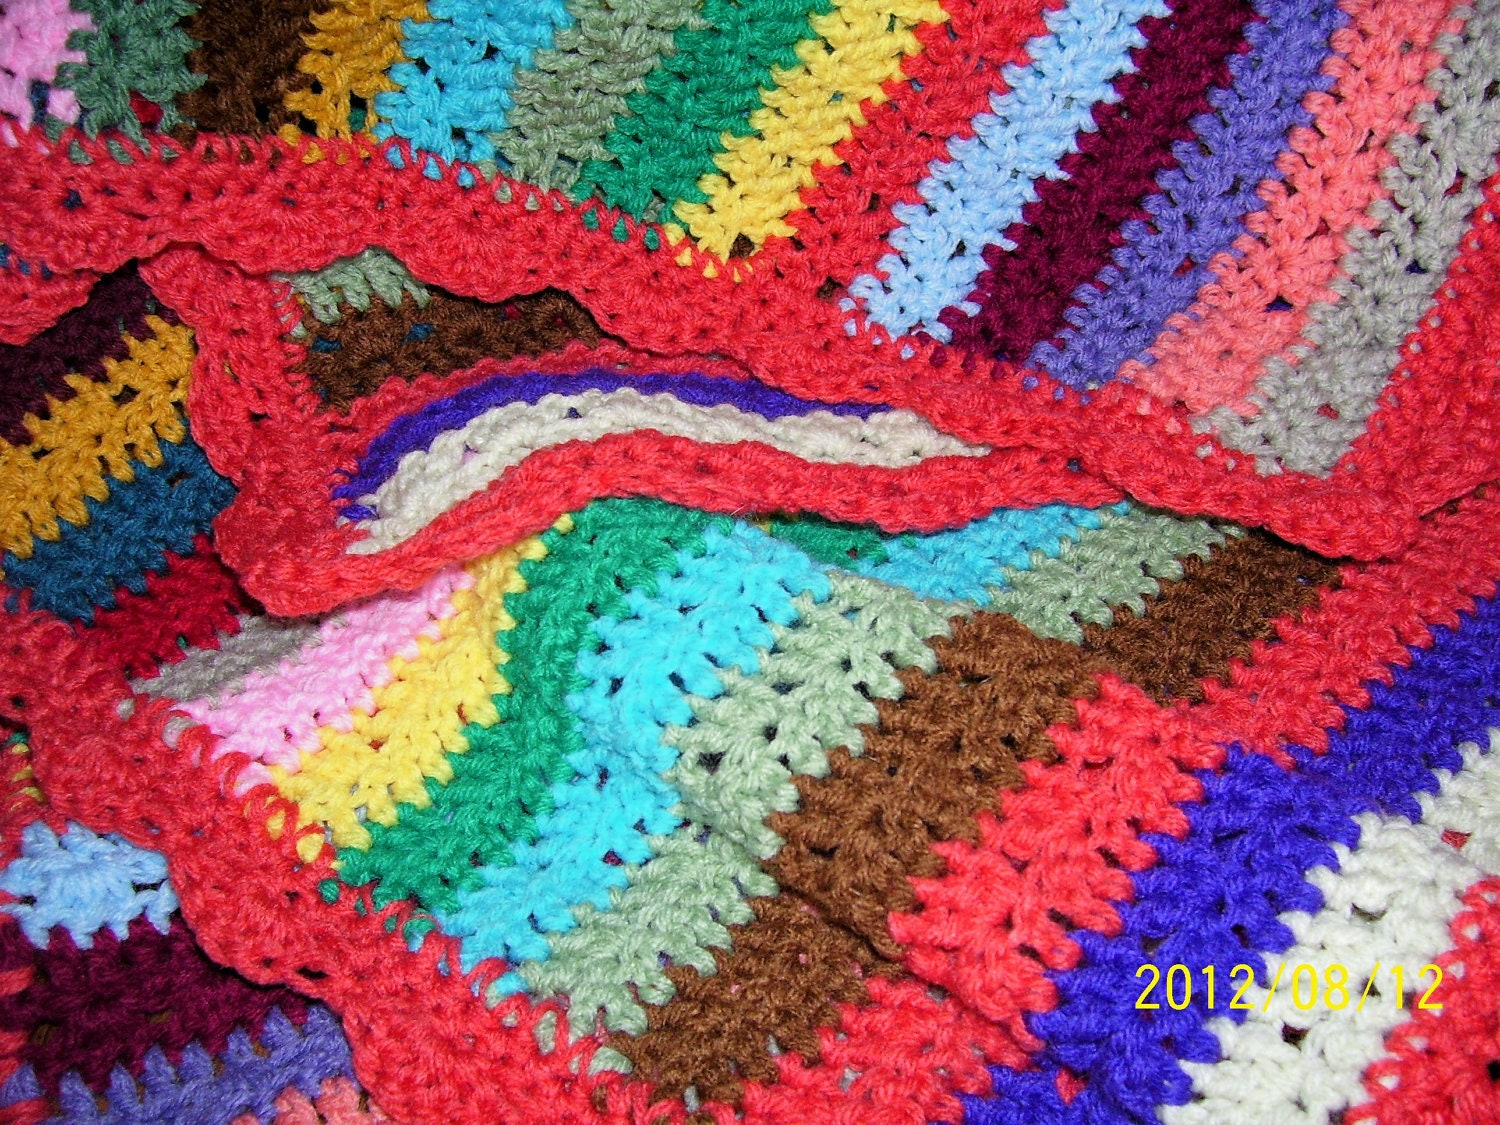 Crochet Stitches Multicolor : hand crochet afghan multi-color yarn close stitch by mummeeinna